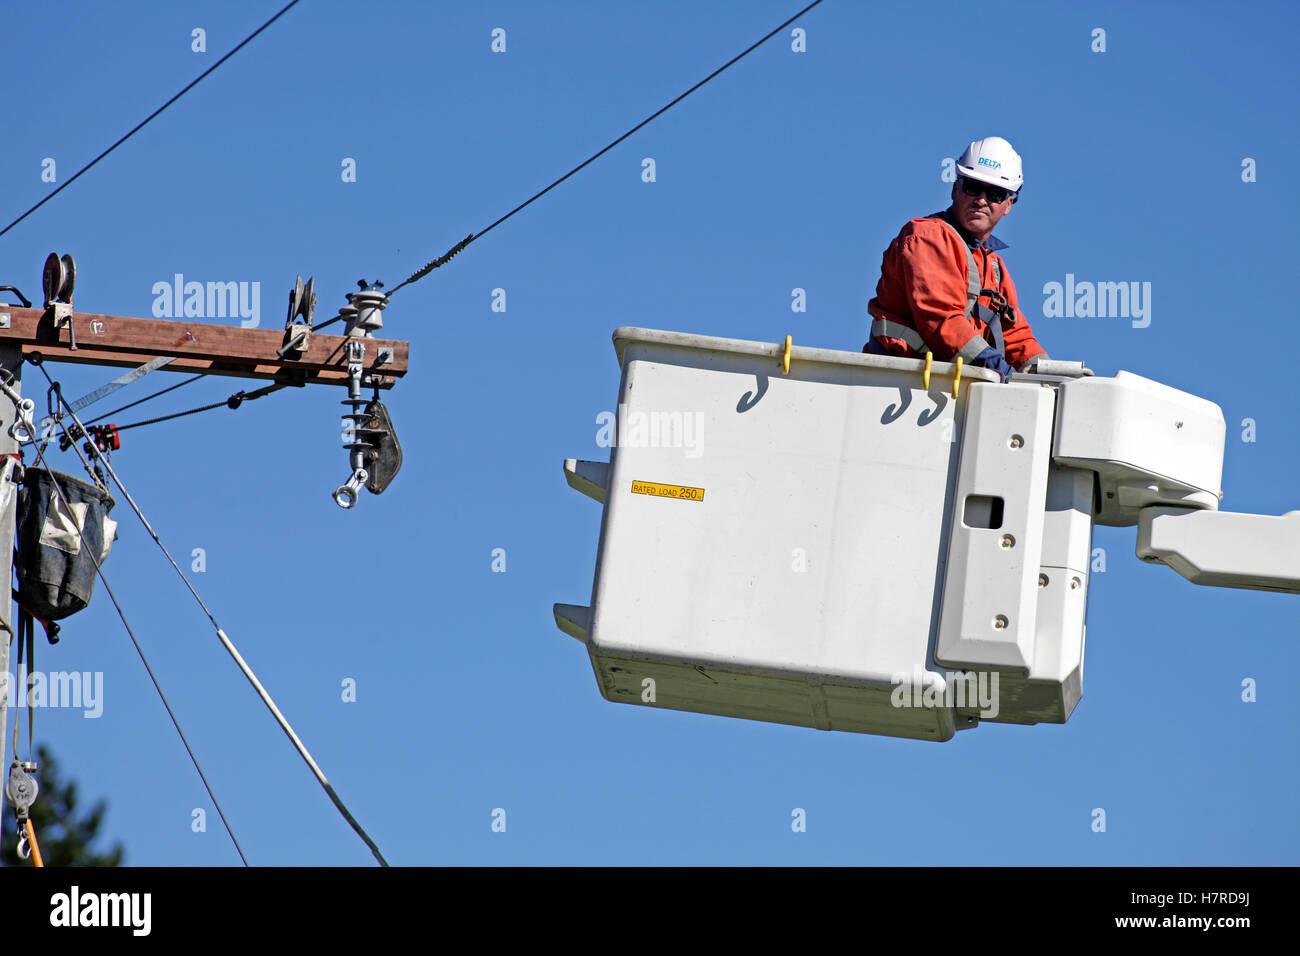 power company worker in a cherry picker hoist replacing high voltage power cables - Stock Image